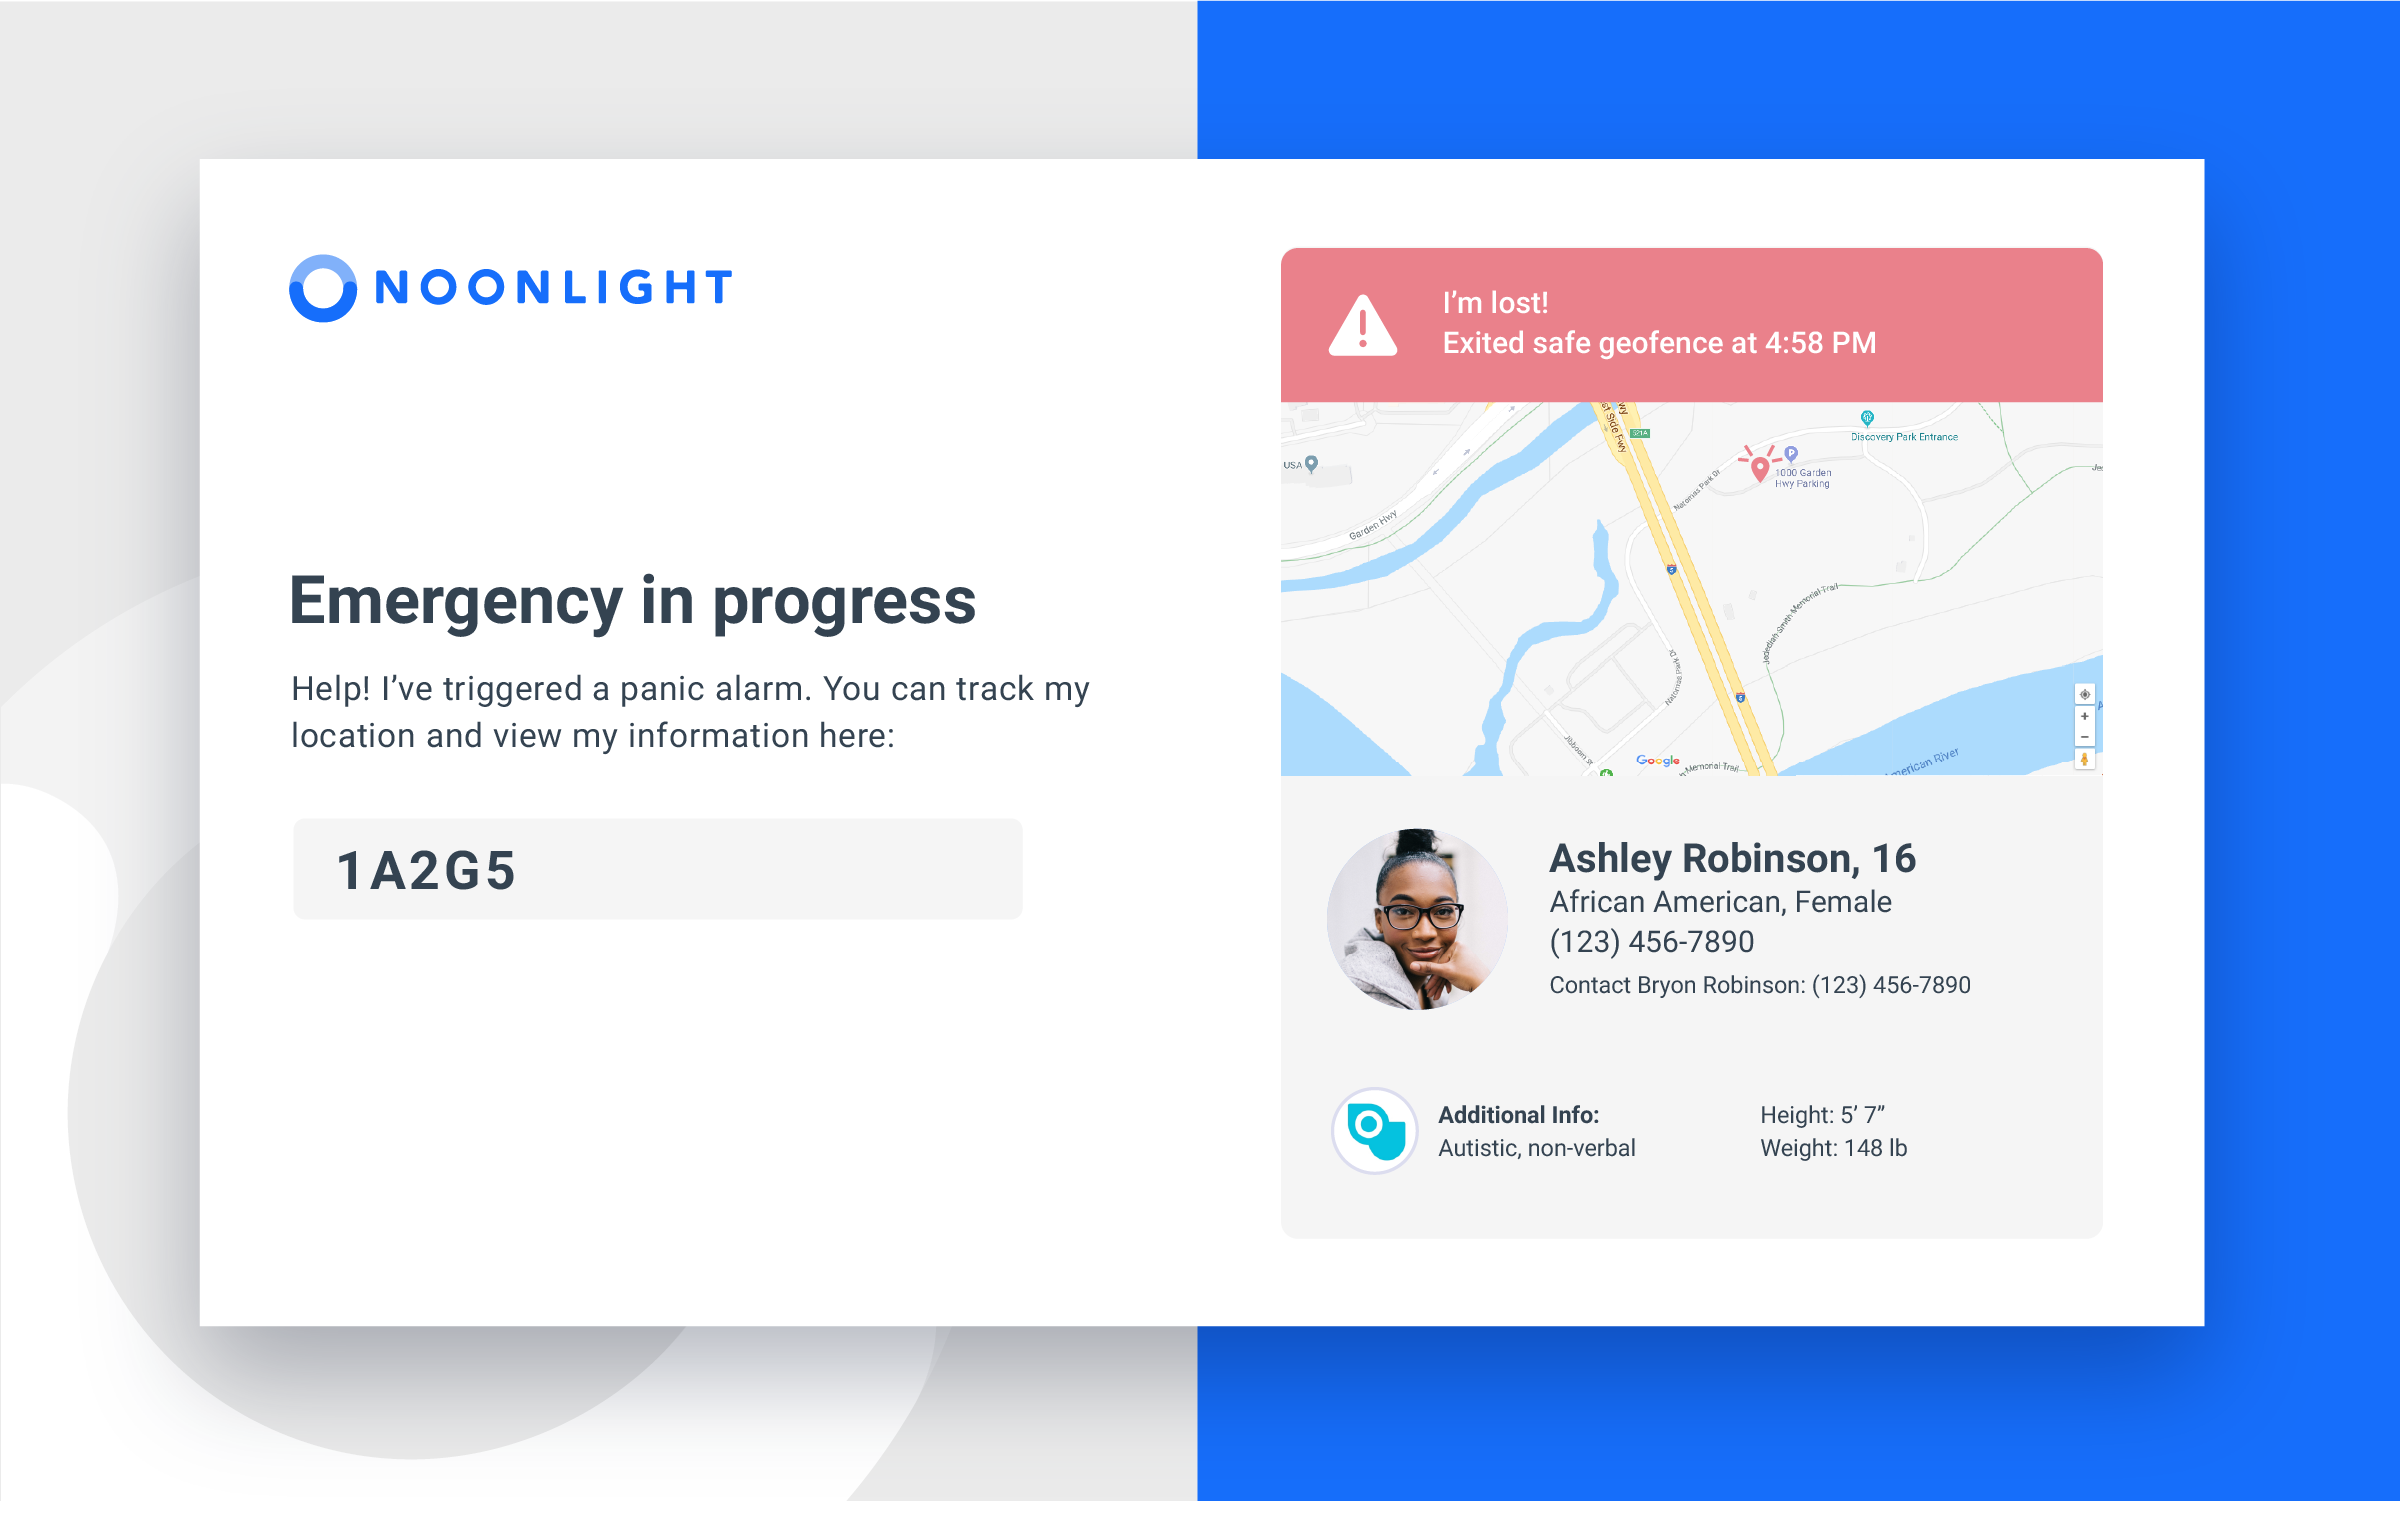 Jiobit users will be able to quickly notify first responders of emergency situations and provide them with essential information such as medical conditions along with a real-time location stream. The integration will work in tandem with Jiobit's alert button and new 24/7 monitoring service.